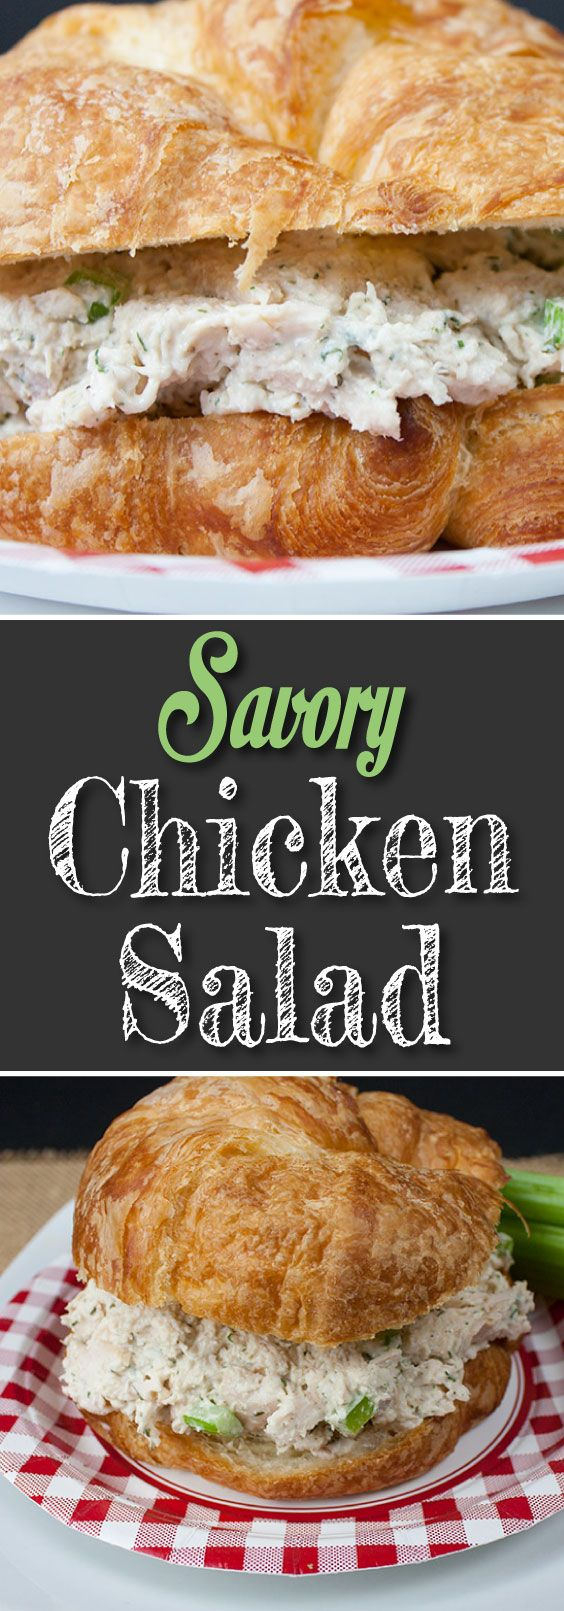 Savory Chicken Salad – Not your typical chicken salad recipe. No nuts, no fruit …